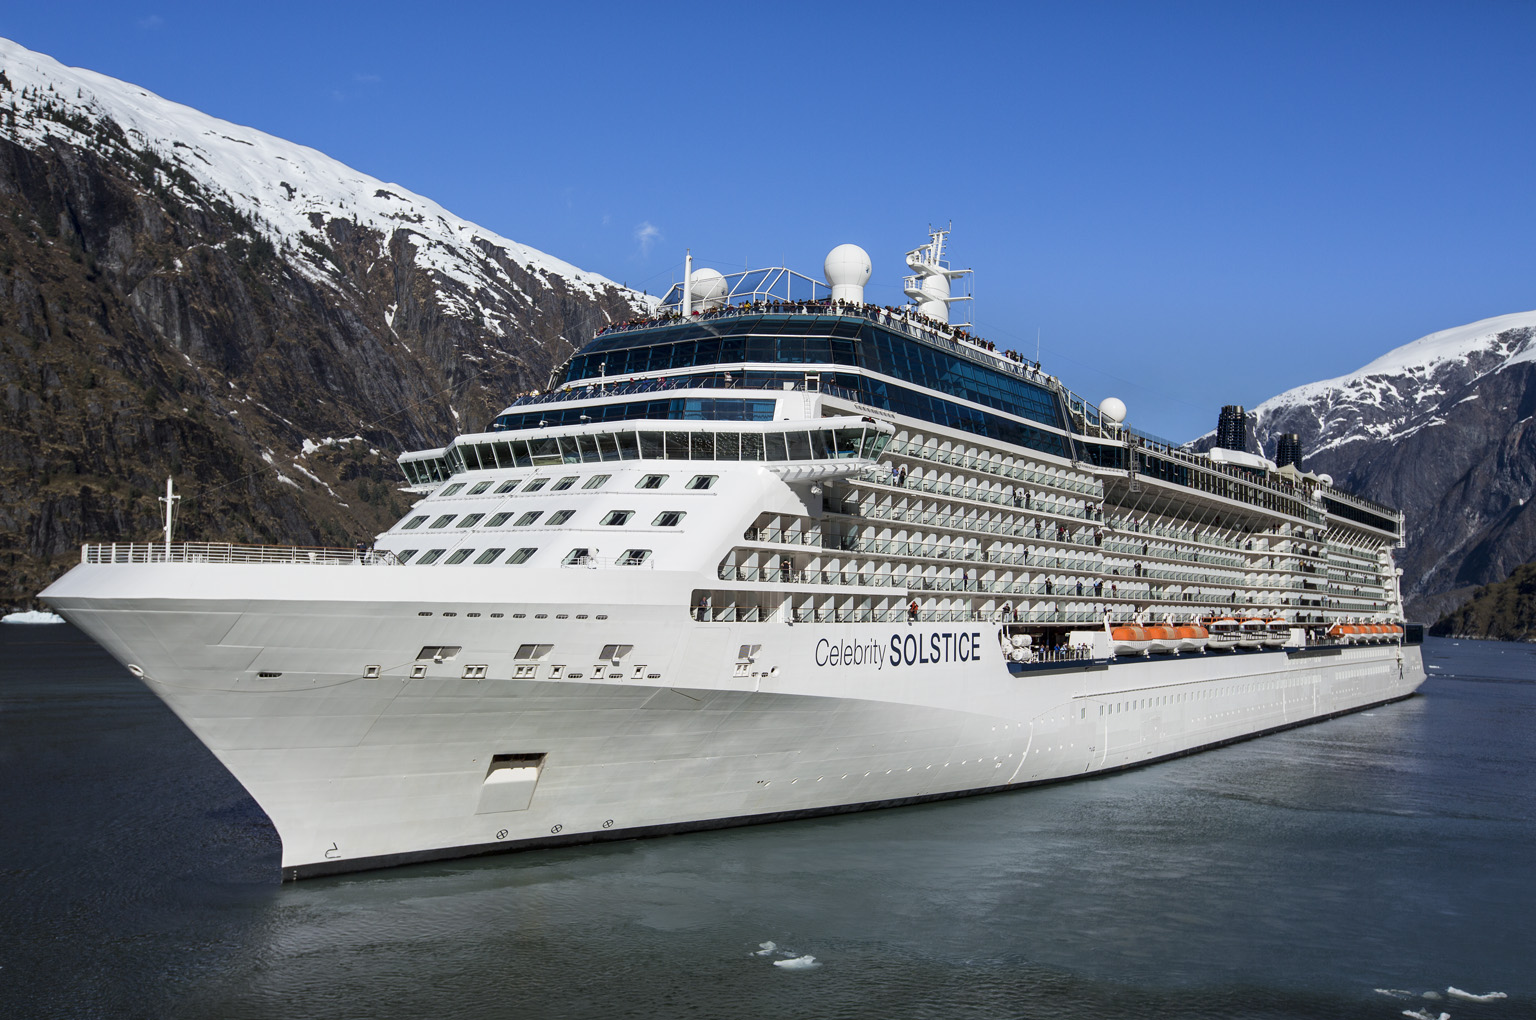 2019 Rain and Hail Photo Contest Rules - m Celebrity solstice ship photos